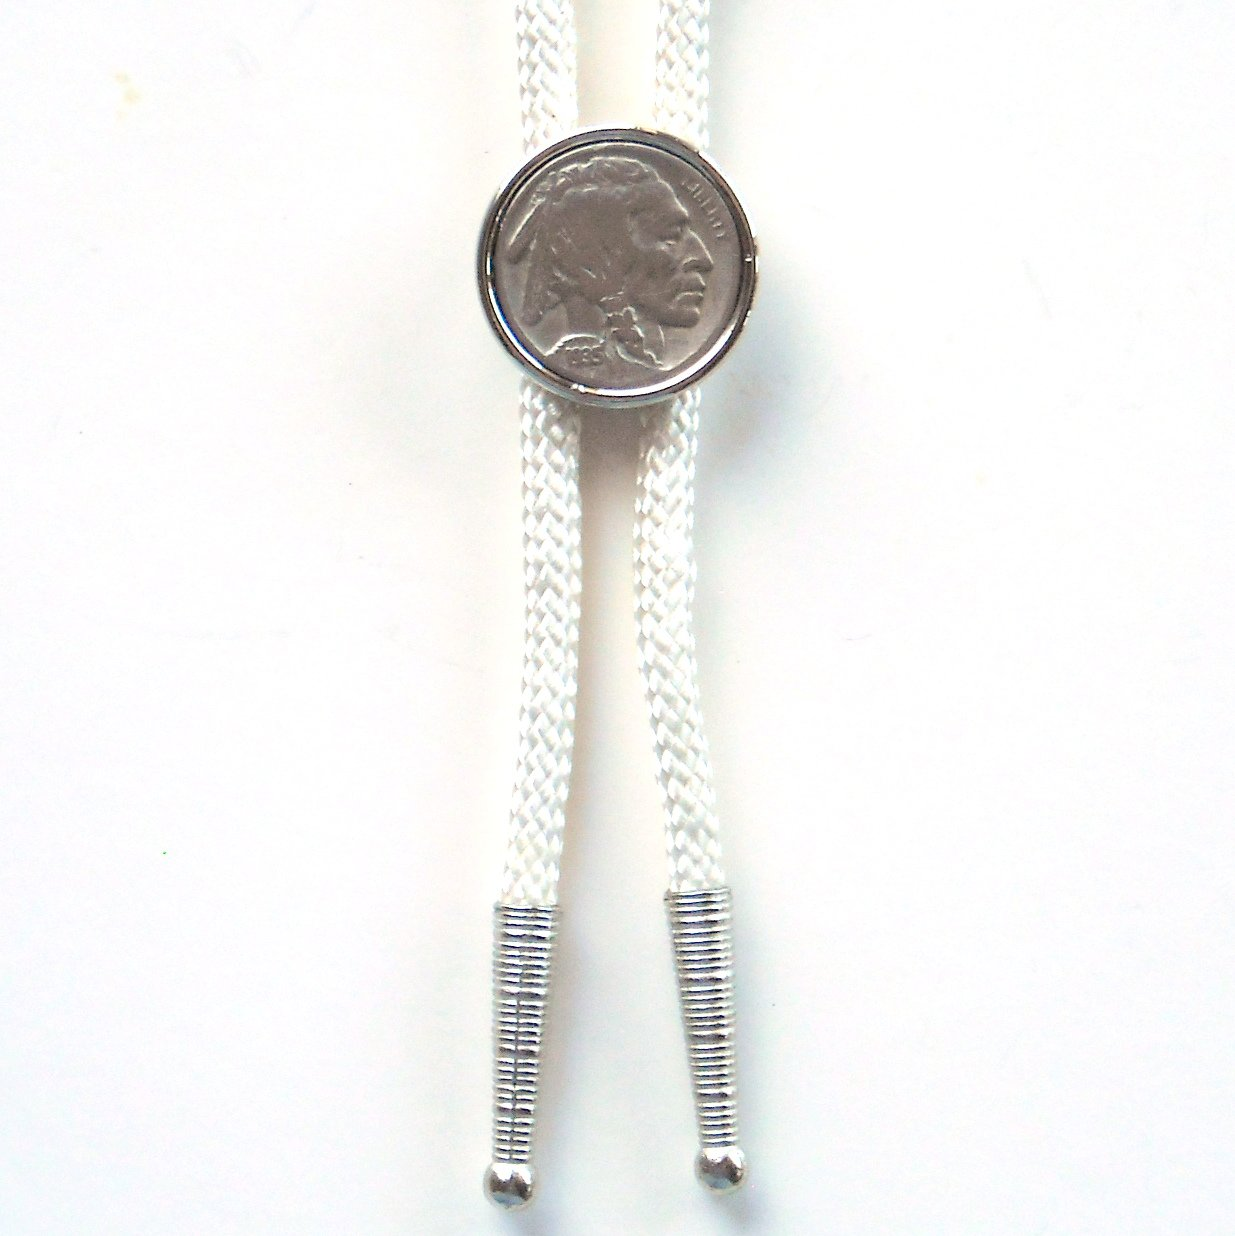 Indian Head 1935 Real Nickel Coin Vintage White Bolo Bootlace Tie